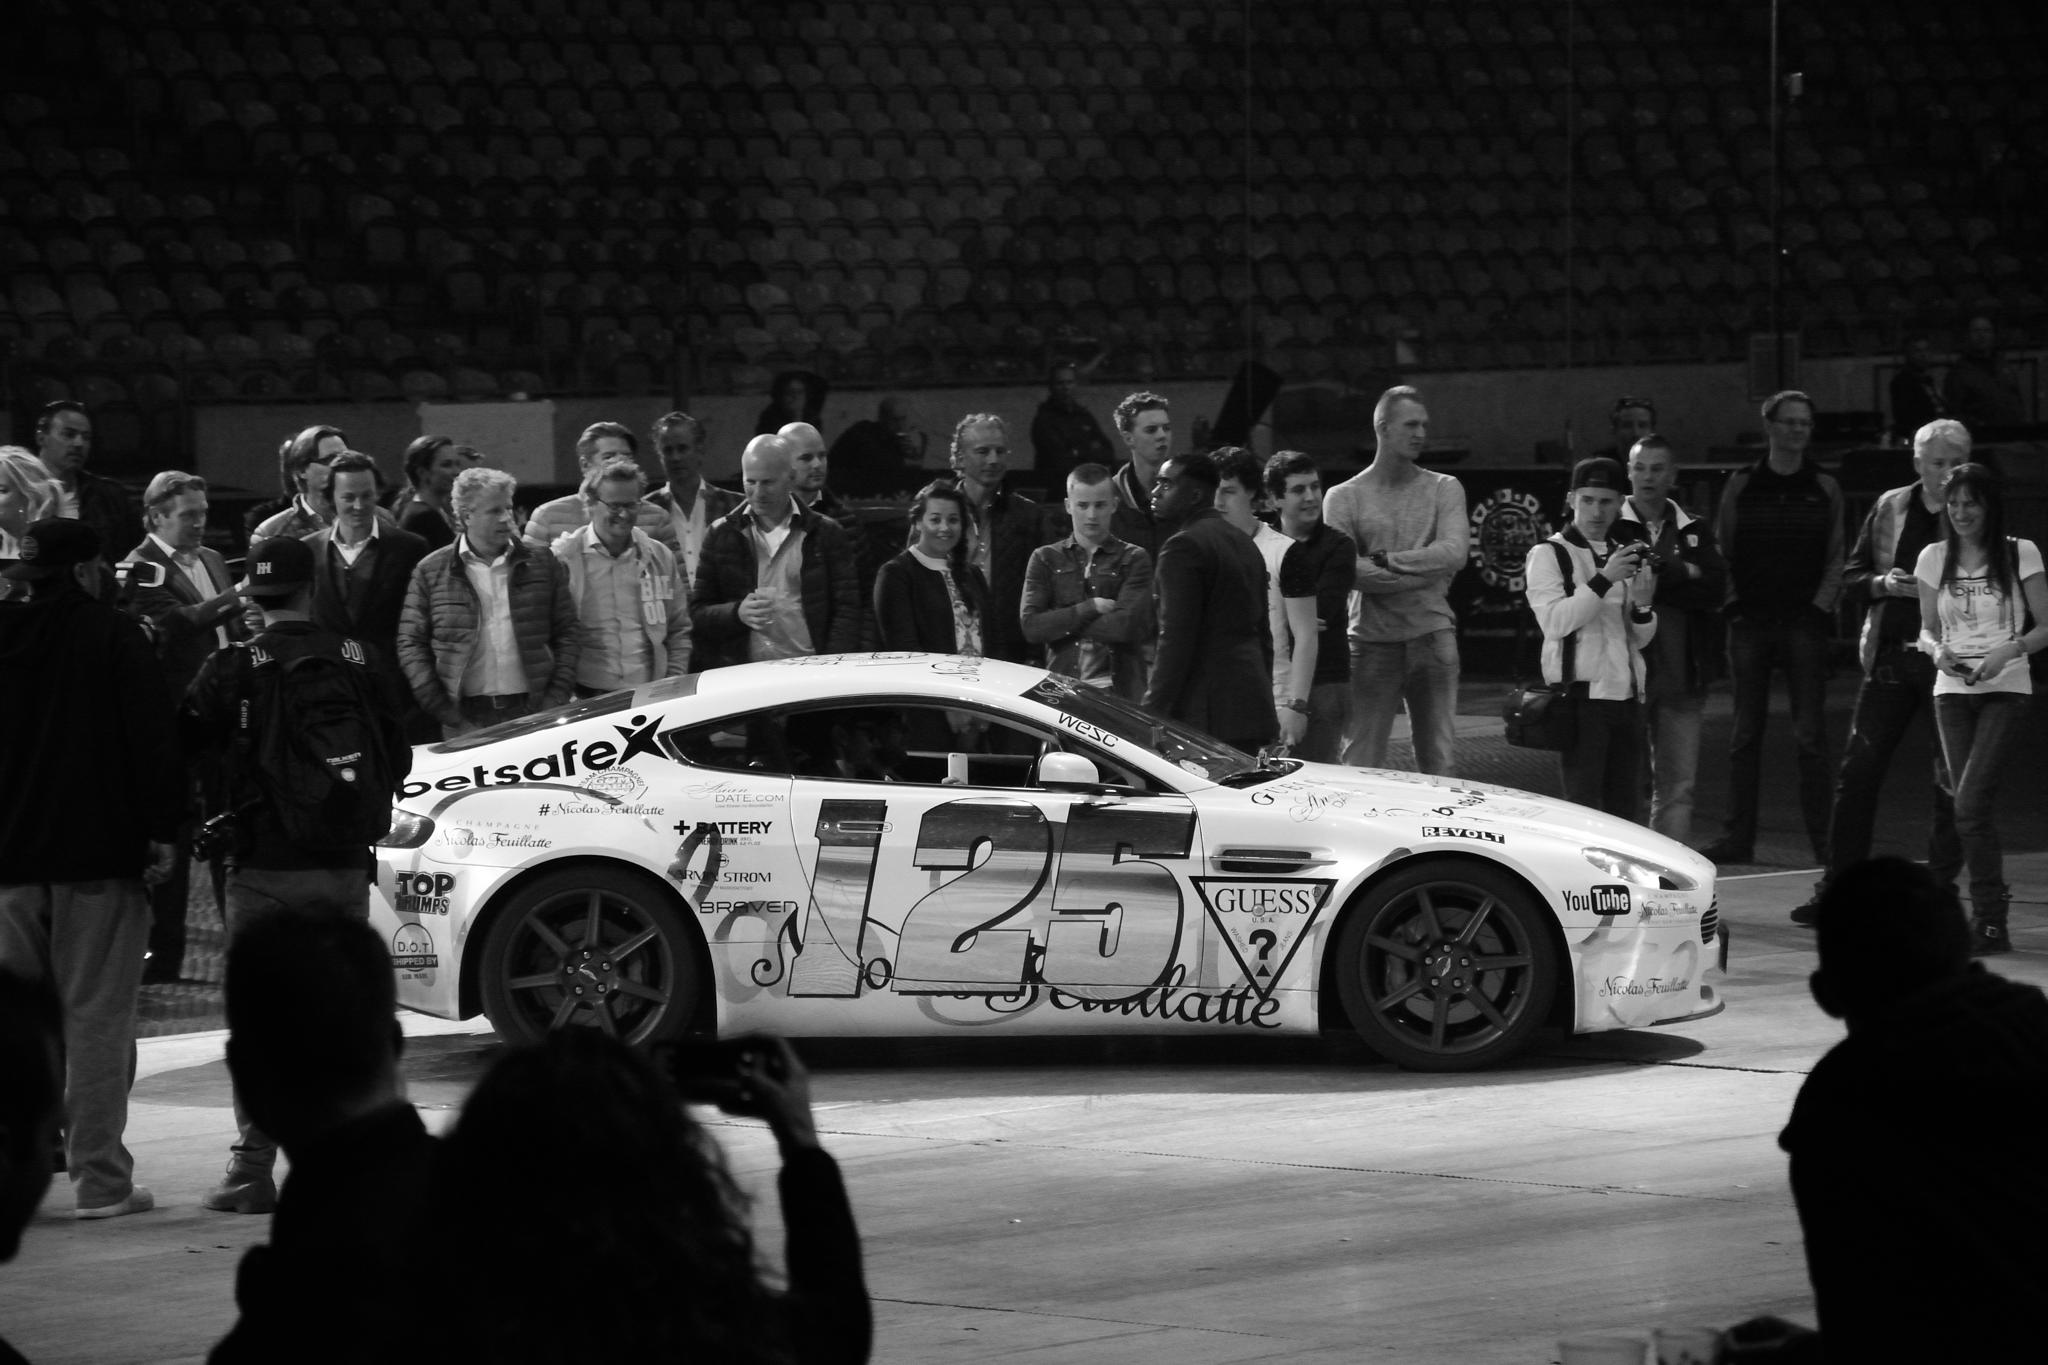 Aston Martin at the Gumball 3000 Amsterdam, Netherlands by Wim Byl